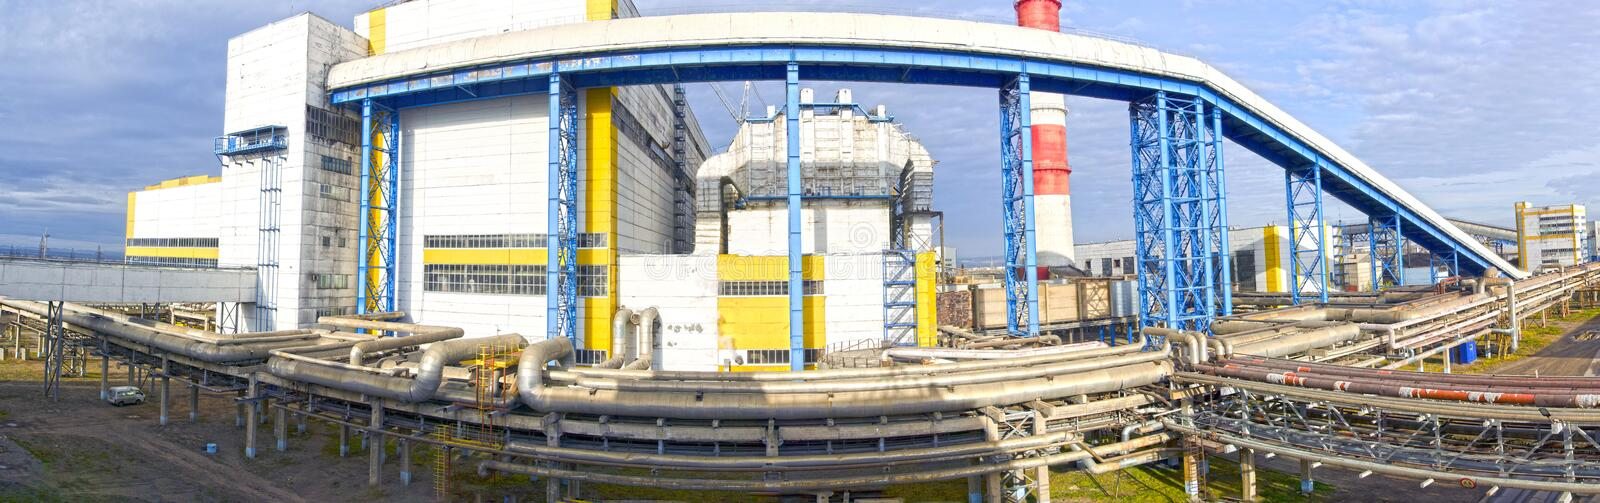 The territory of an industrial enterprise. Fuel and oil tanks. Interlacing of huge, industrial pipes in the factory. Panorama.  royalty free stock image